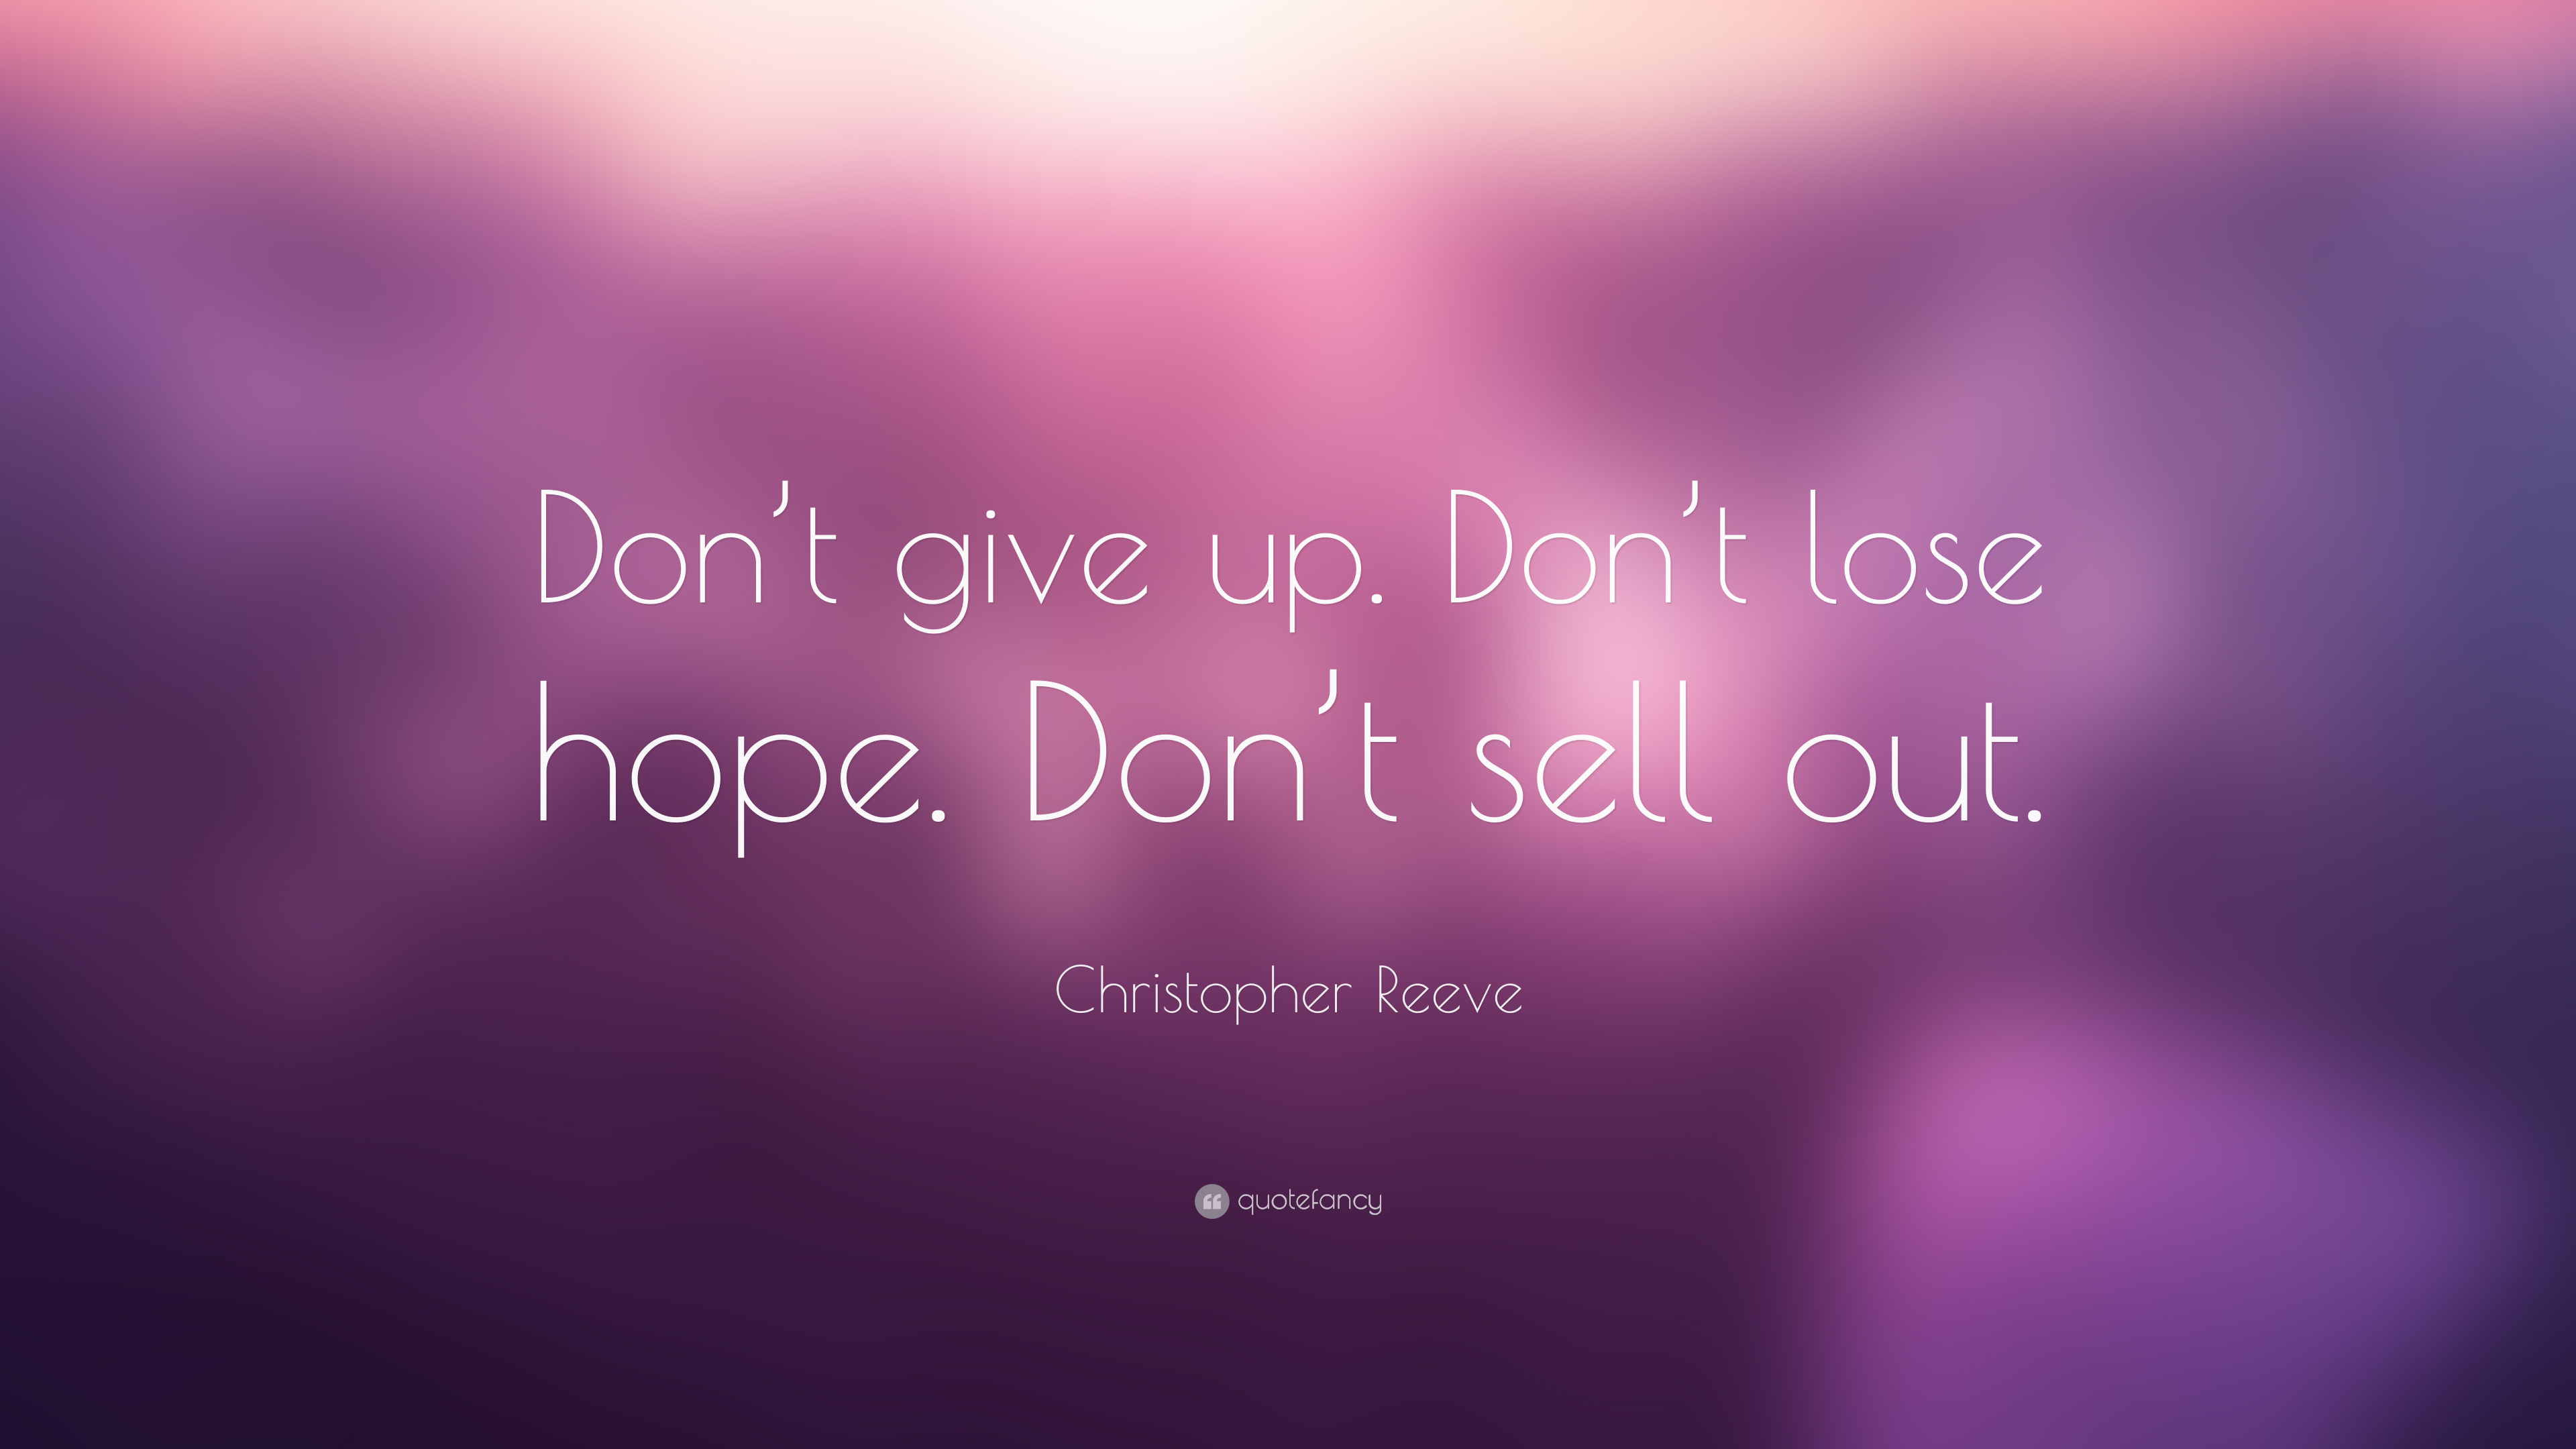 Christopher Reeve Quote Don T Give Up Don T Lose Hope Don T Sell Out 9 Wallpapers Quotefancy